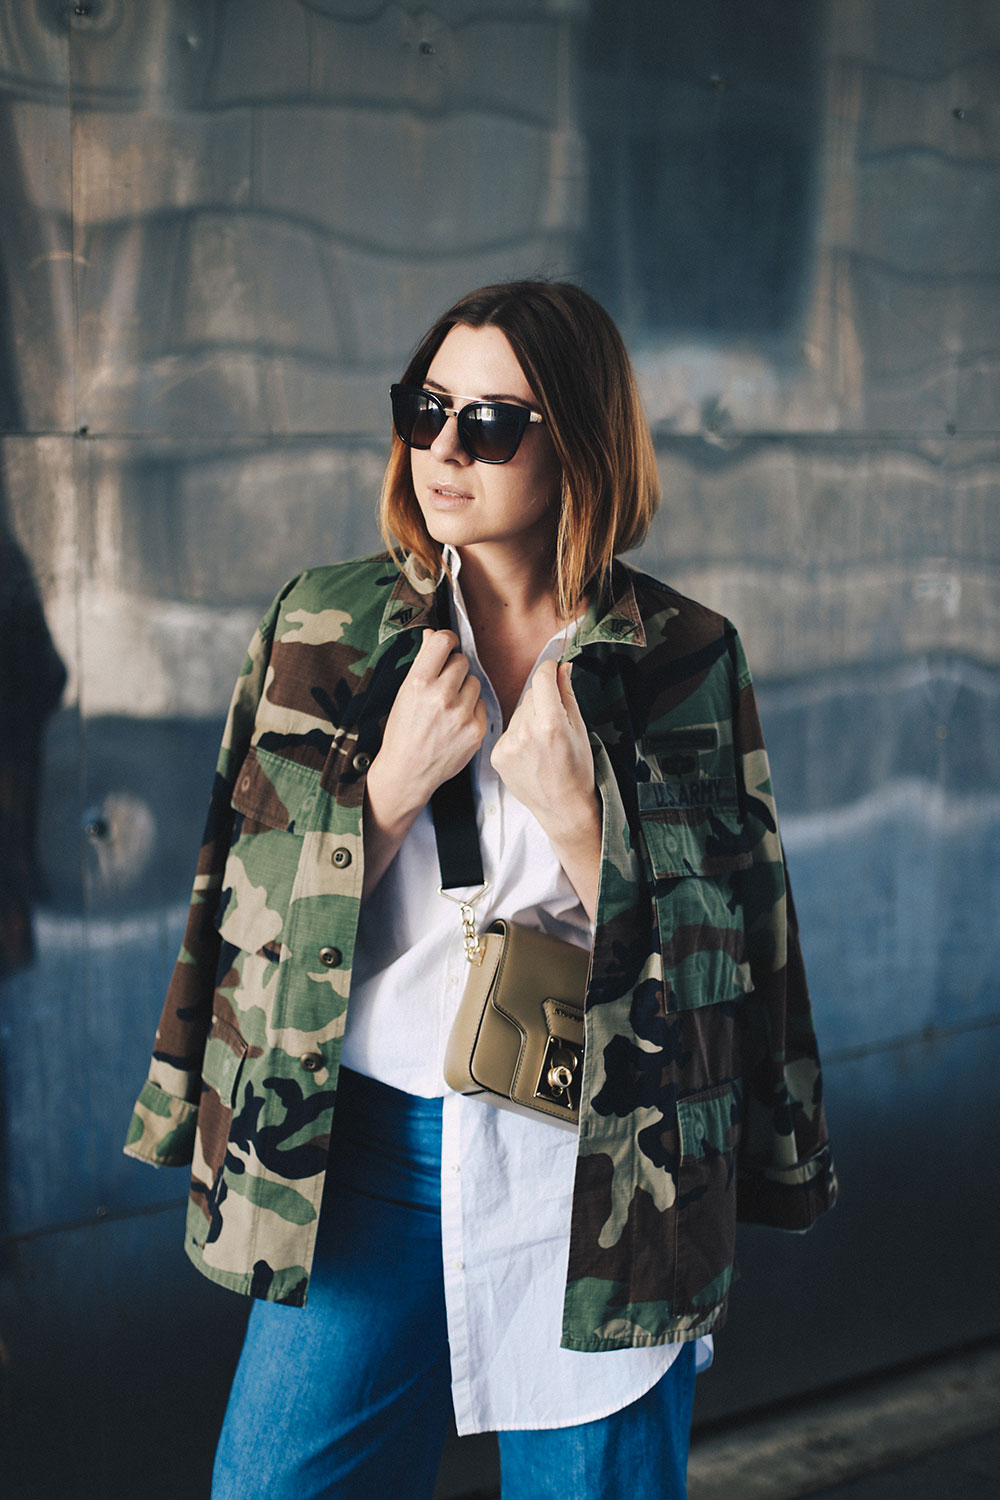 Oversize Camouflage Parka, Denim Culotte, goldene Boots, Streetstyle, Herbst Outfit, Metallic Boots, Cross Body Bag, breiter Riemen, Fashion Blog, Modeblog, whoismocca.com